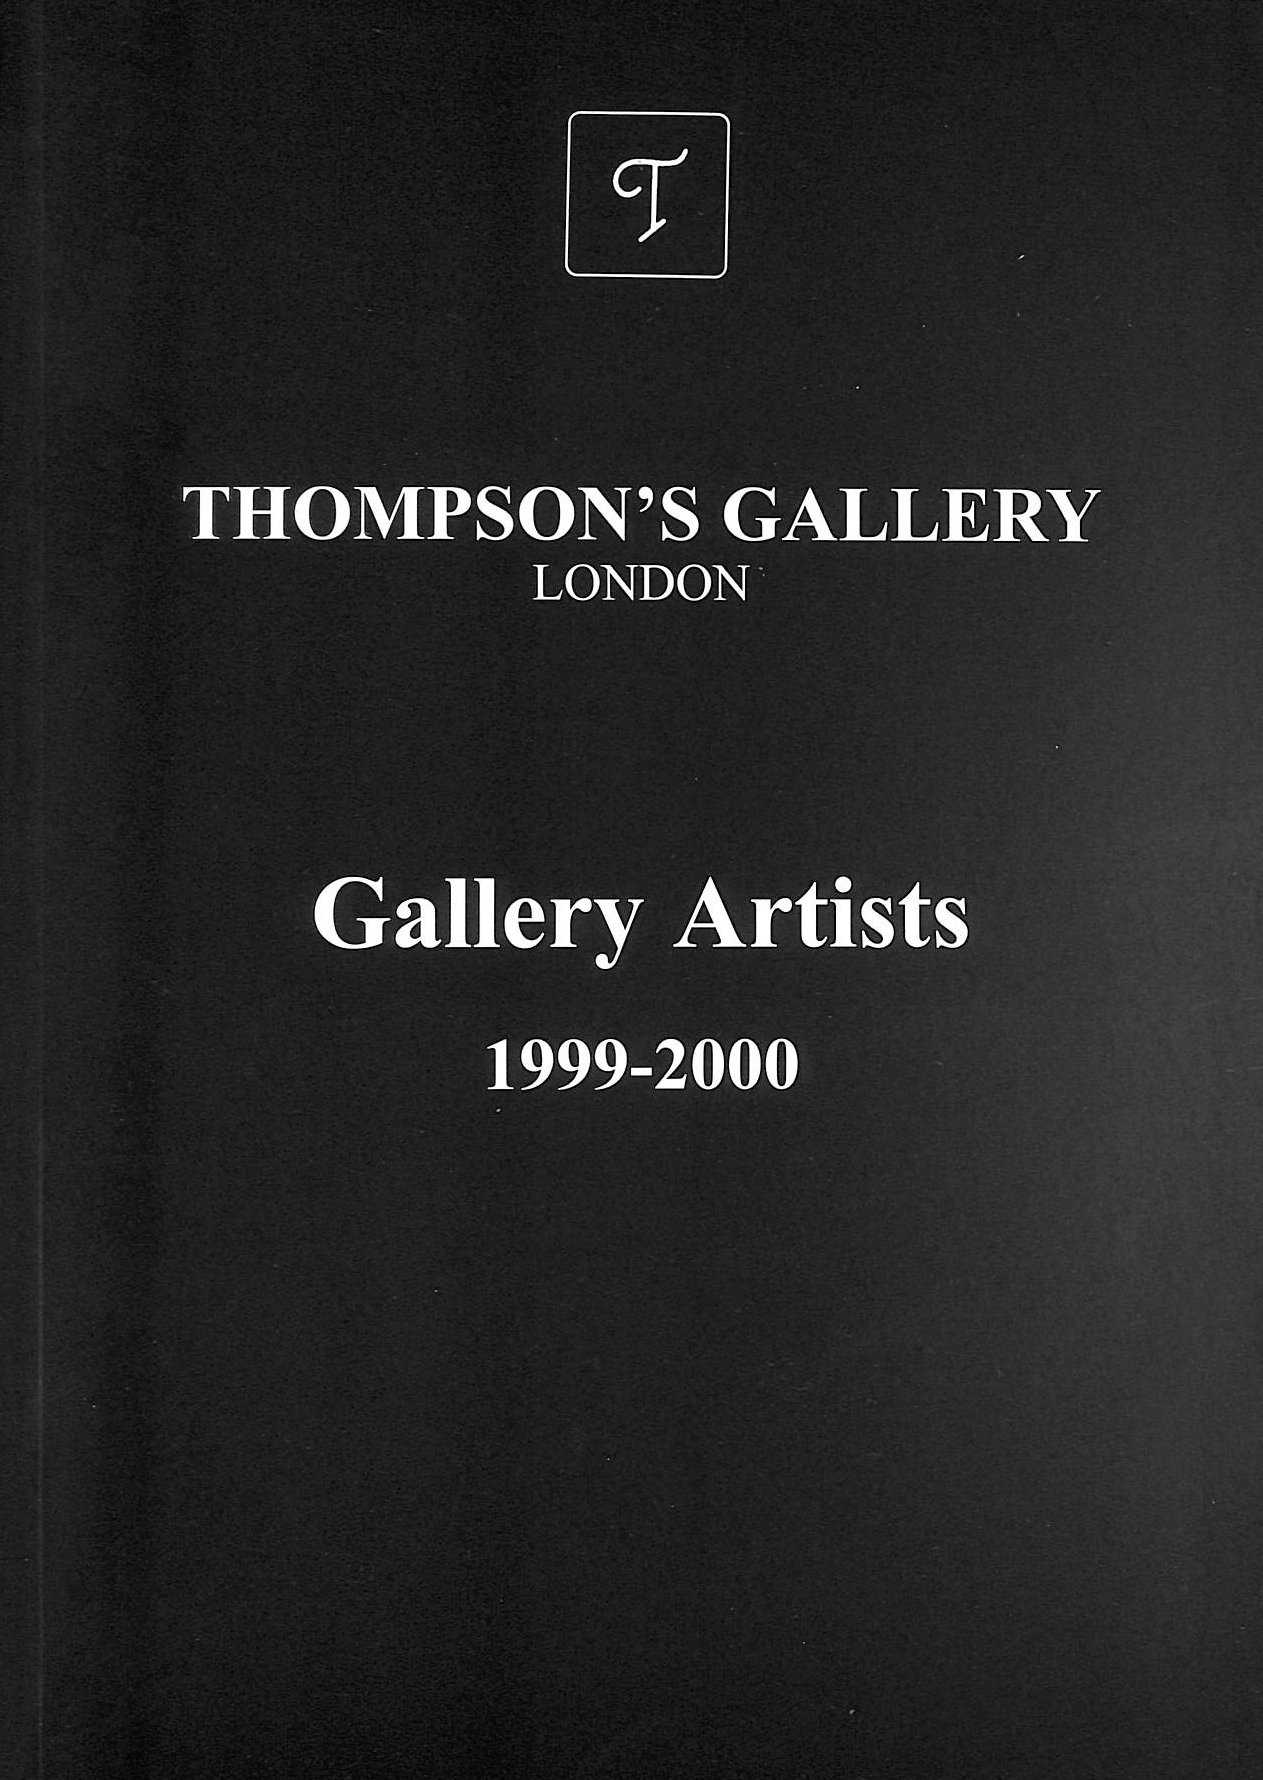 Image for Thompson's Gallery Gallery Artists 1999-2000